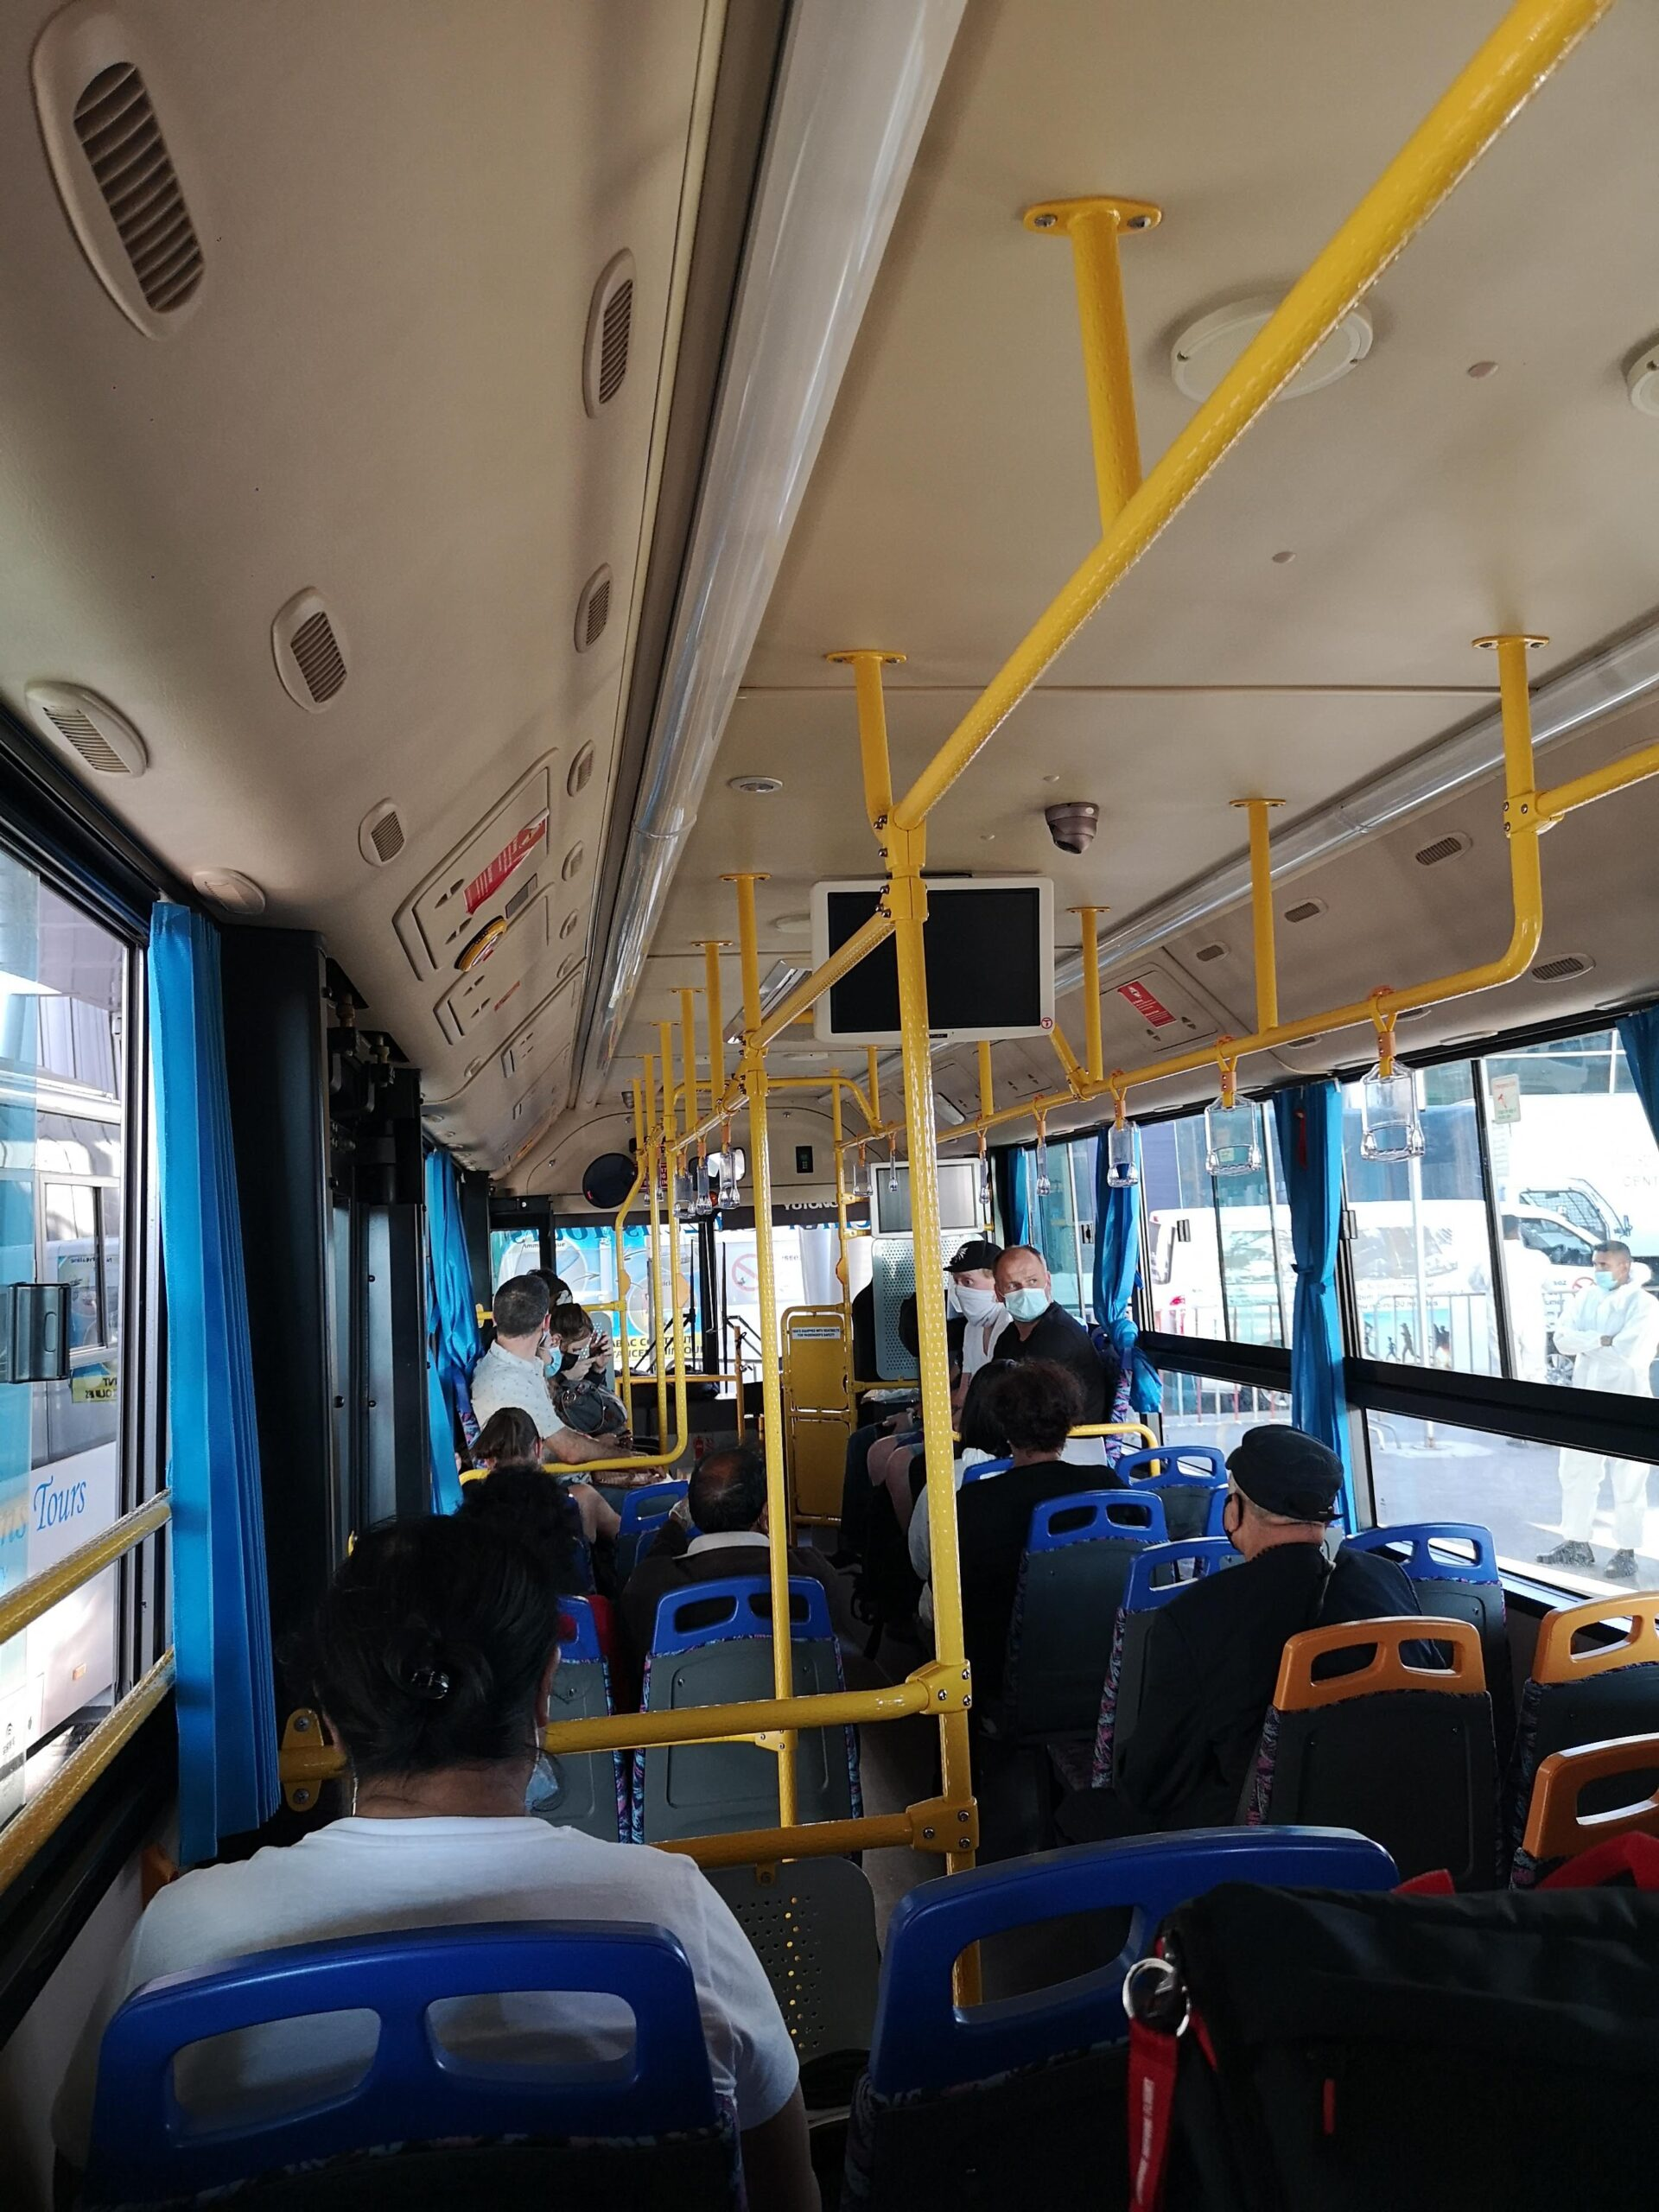 on the bus to the quarantine hotel